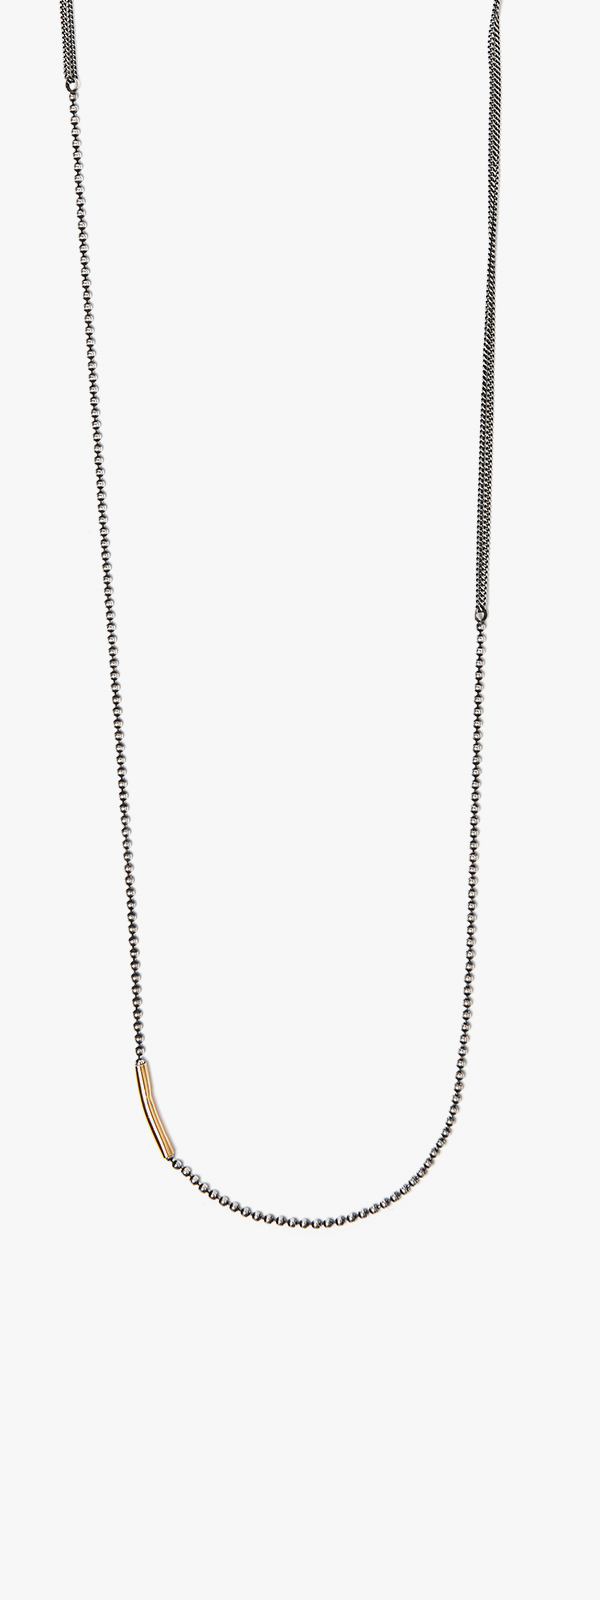 Image of 18k Gold Tube to Mixed Chains Necklace 091